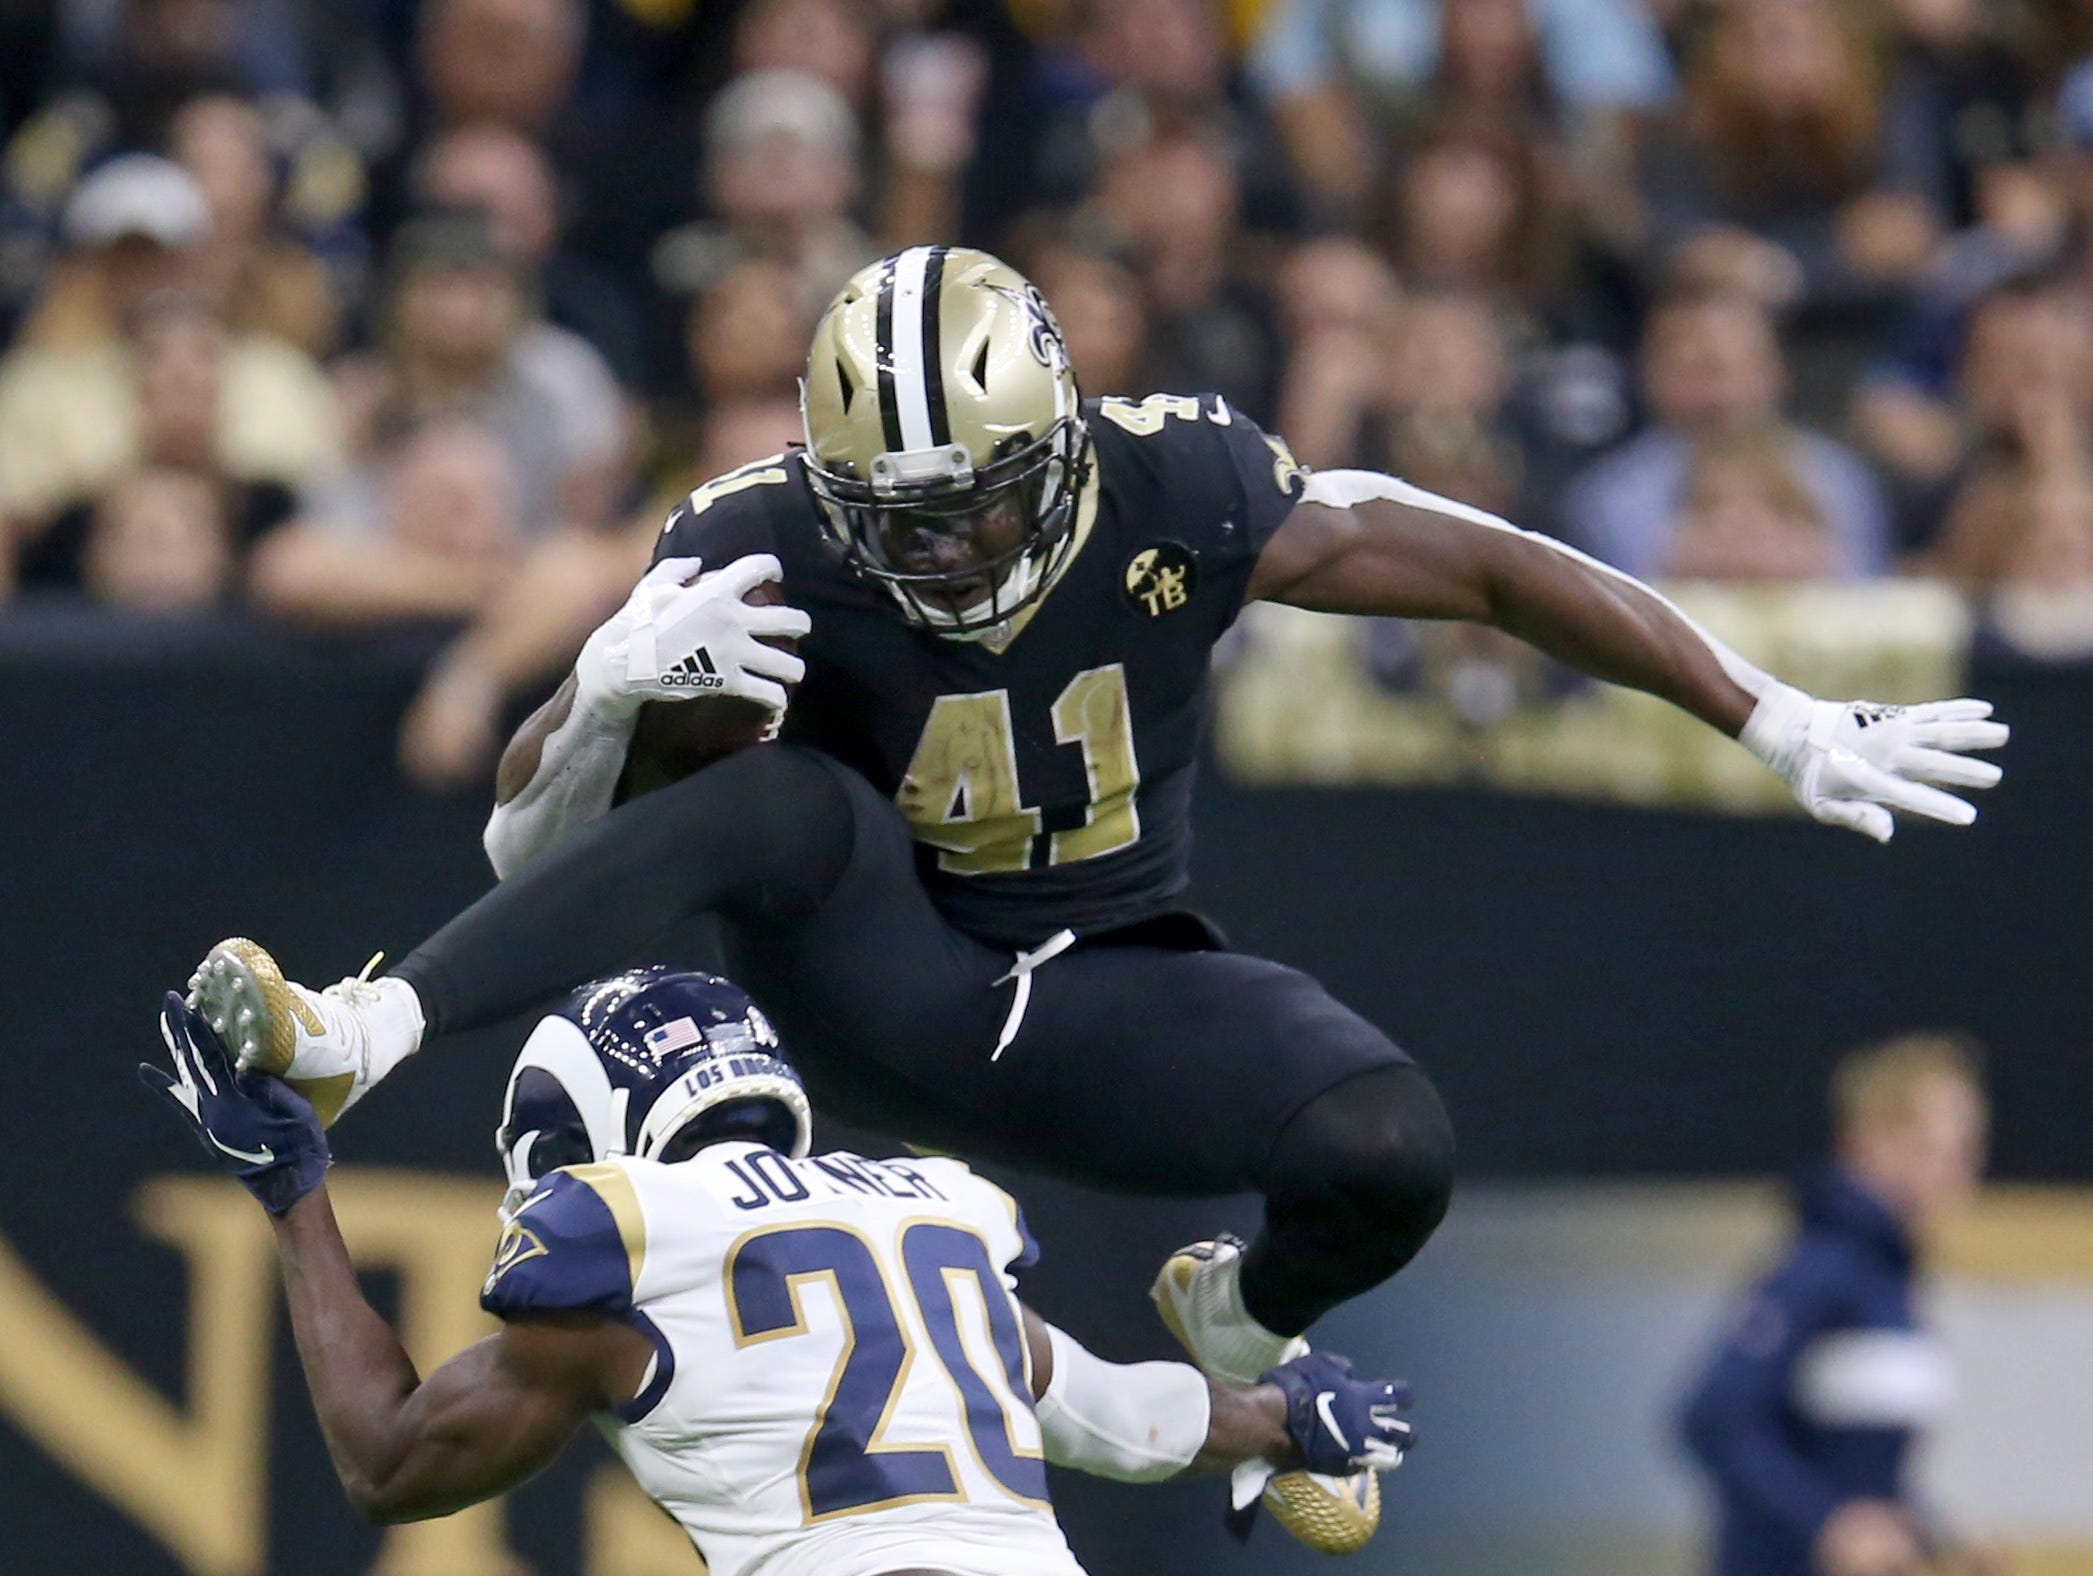 Nov 4, 2018; New Orleans, LA, USA; New Orleans Saints running back Alvin Kamara (41) hurdles Los Angeles Rams free safety Lamarcus Joyner (20) in the fourth quarter at the Mercedes-Benz Superdome. Saints won, 45-35. Mandatory Credit: Chuck Cook-USA TODAY Sports